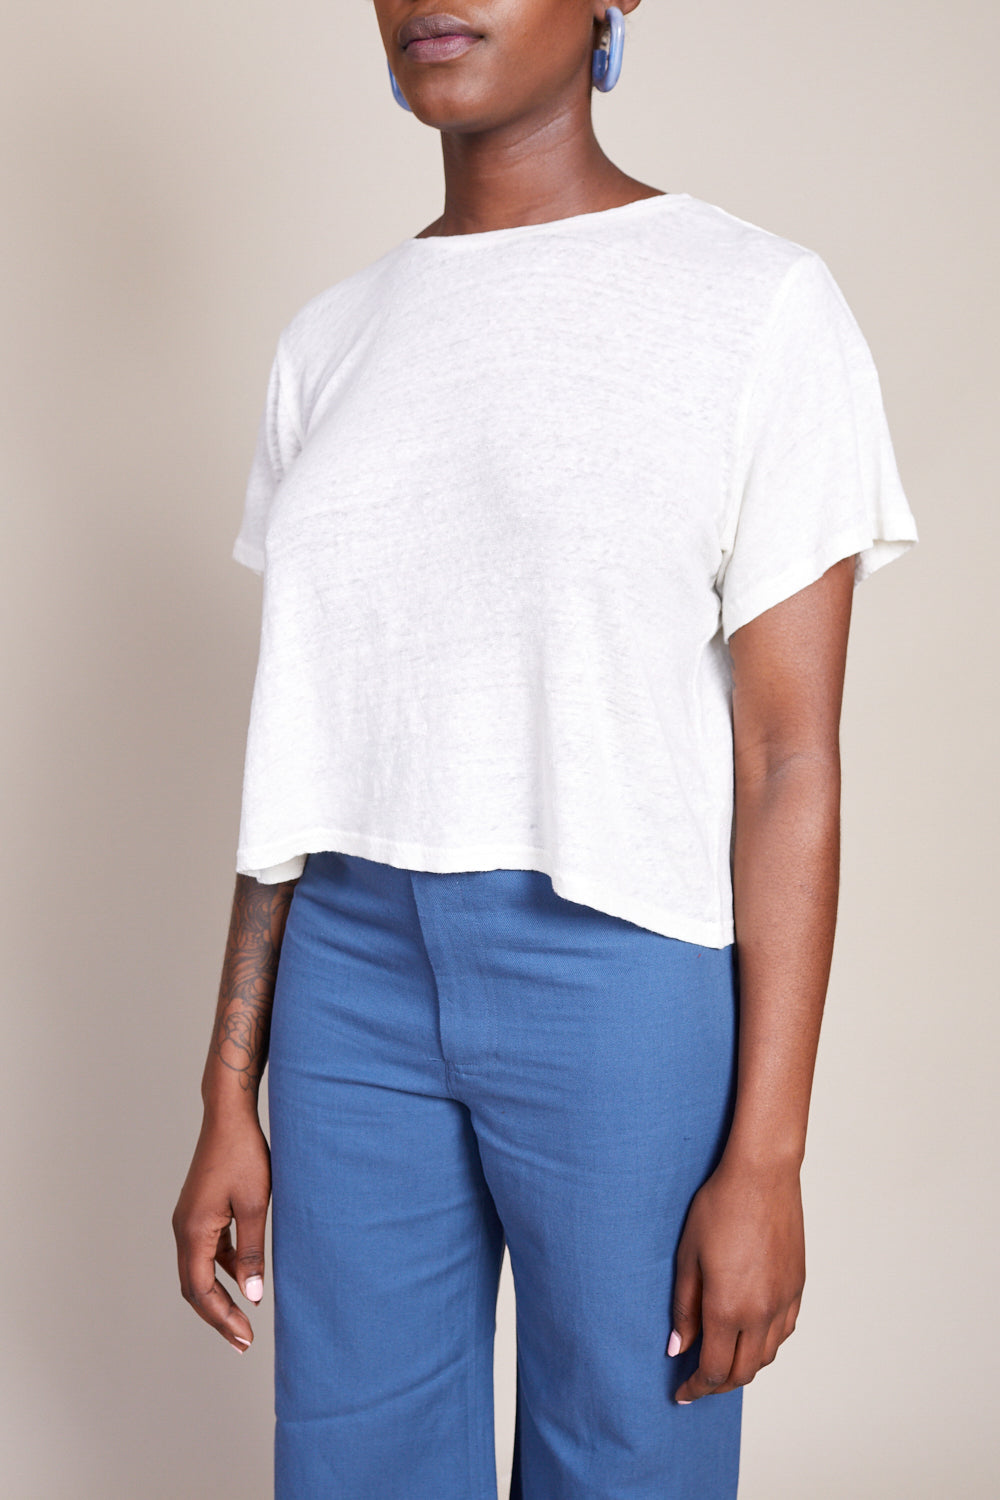 Cropped Tee in Cream